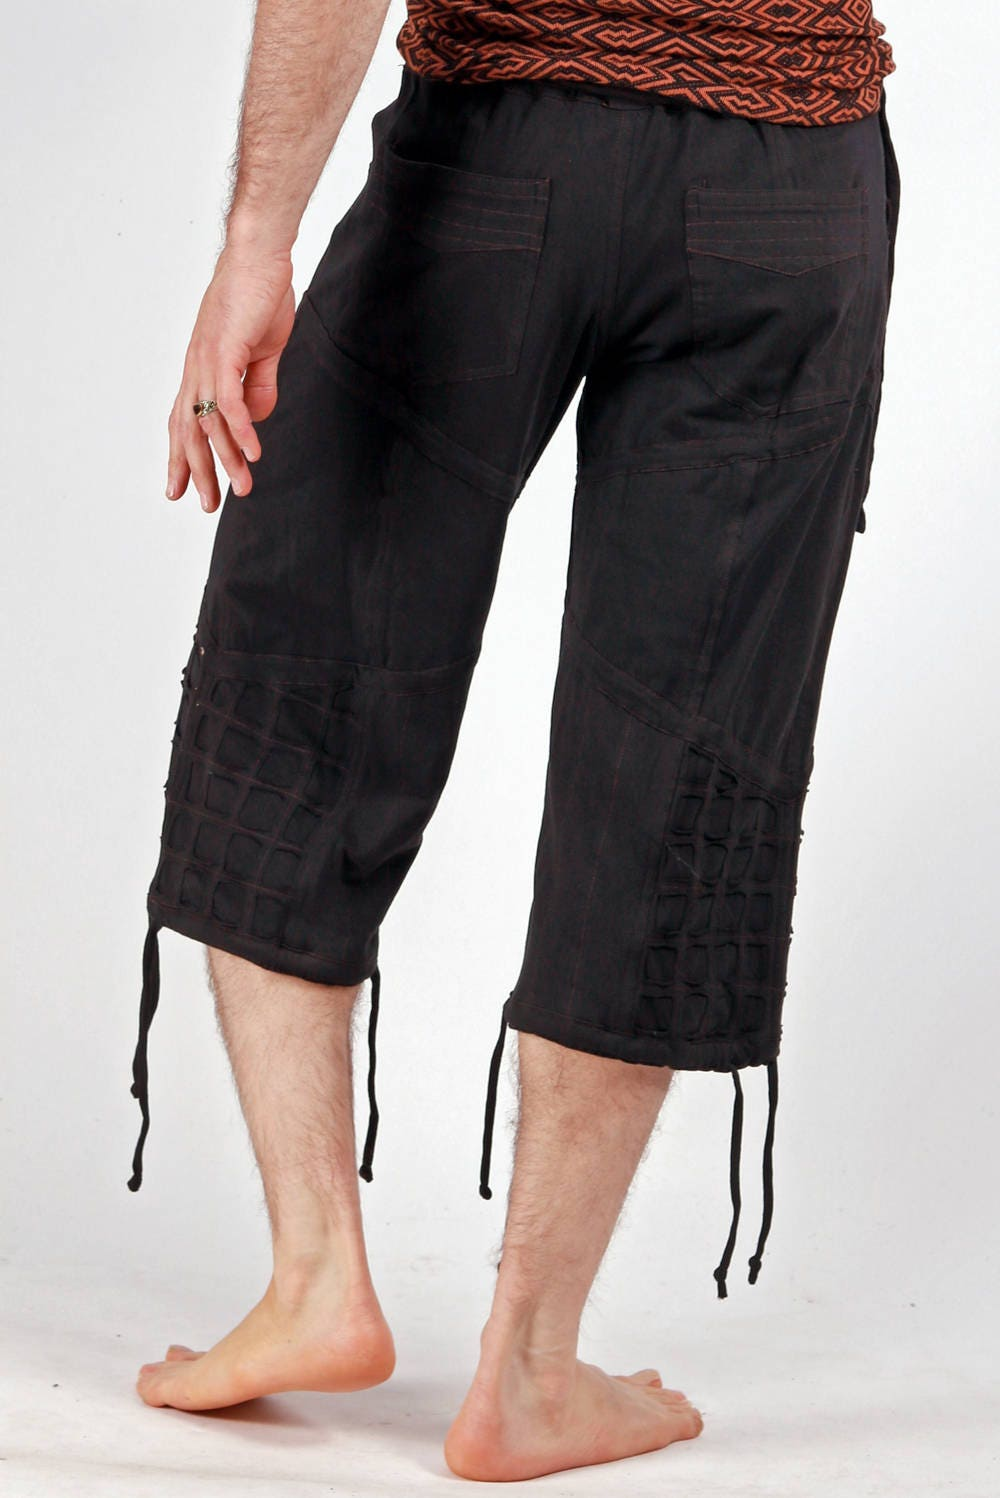 Mens Black Yoga Pirate Shorts for Festivals, Dance, Burning Man.